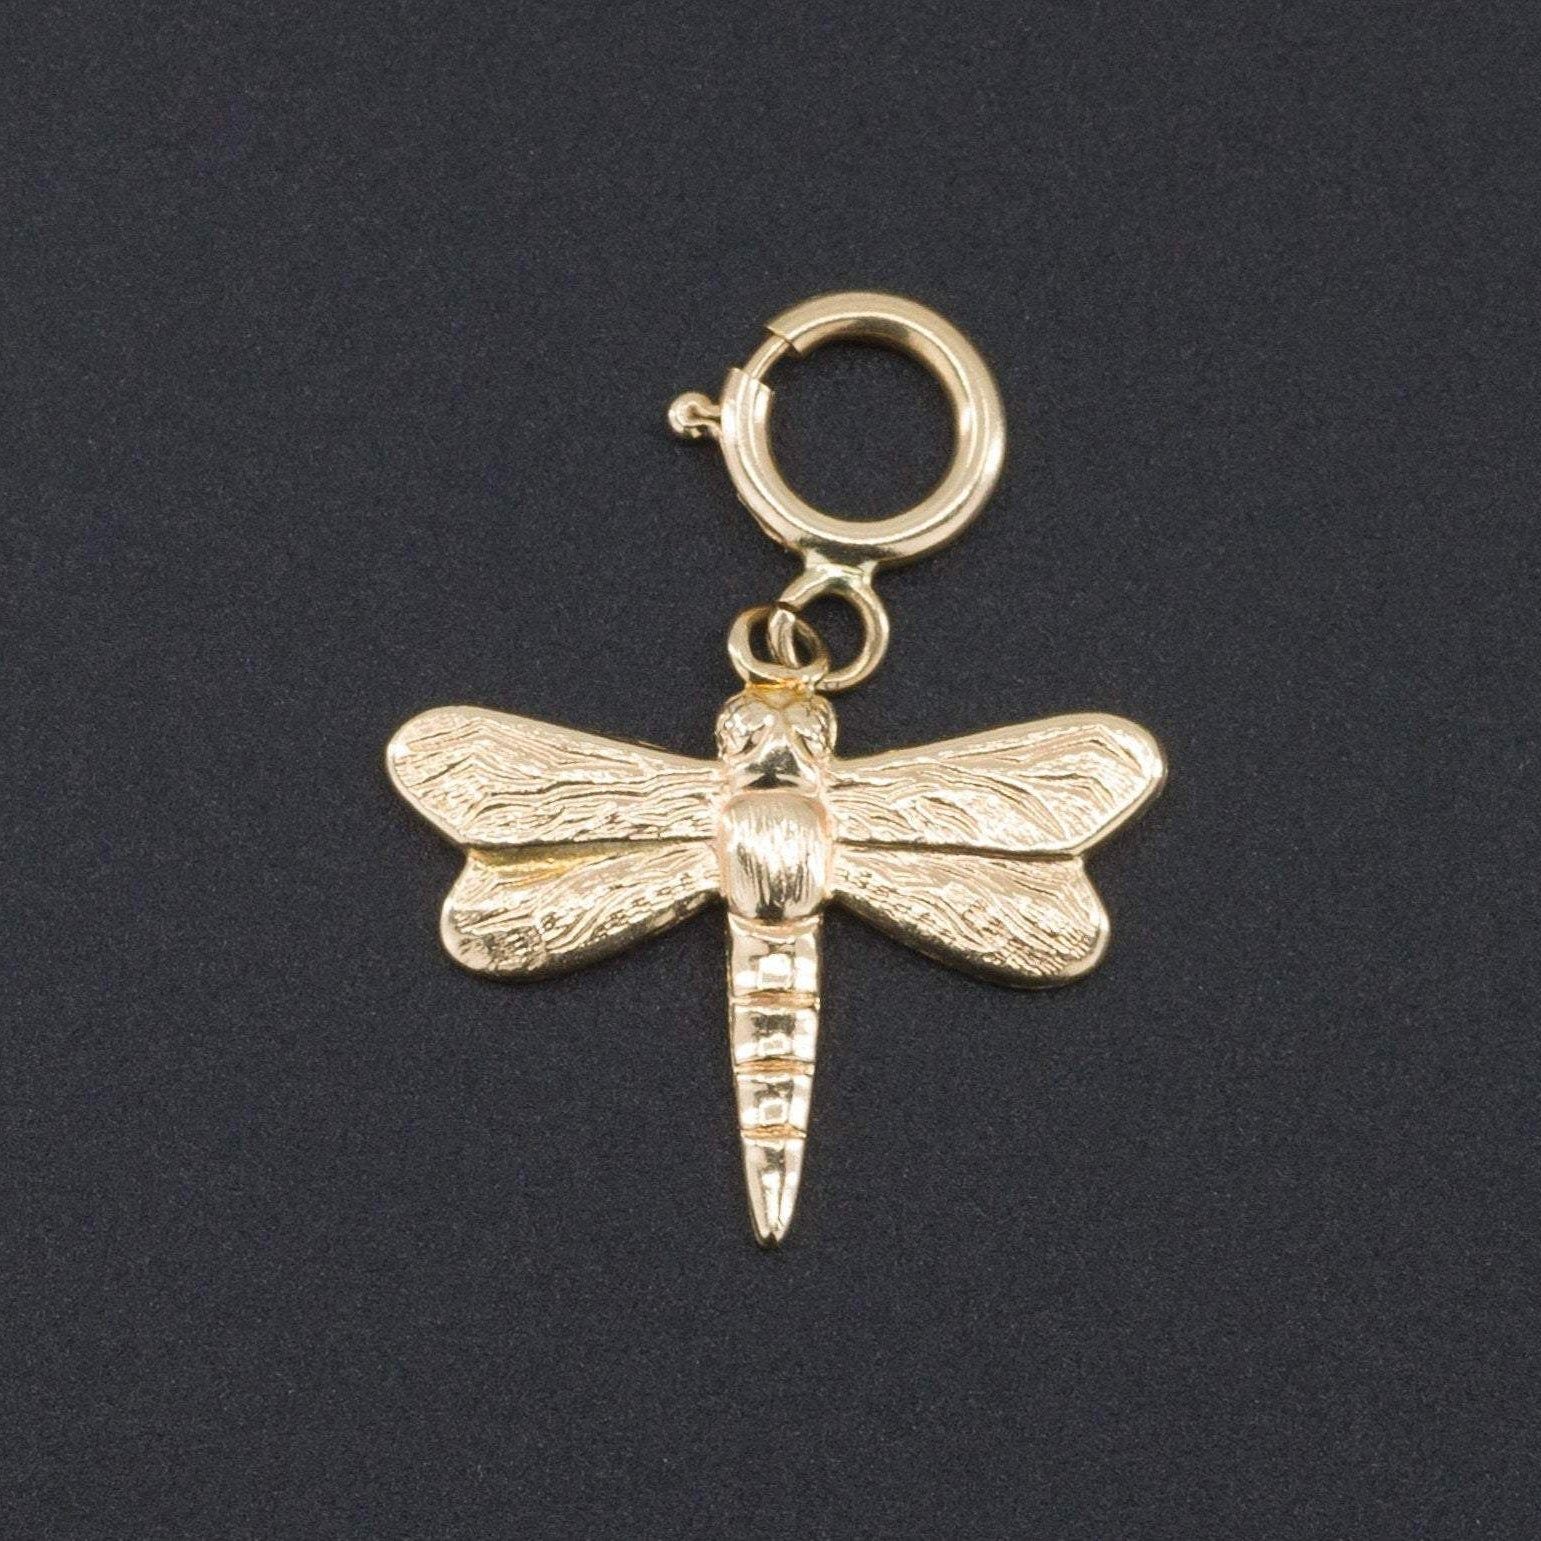 14k Gold Dragonfly Charm | Dragonfly Charm | Vintage Dragonfly Charm or Pendant